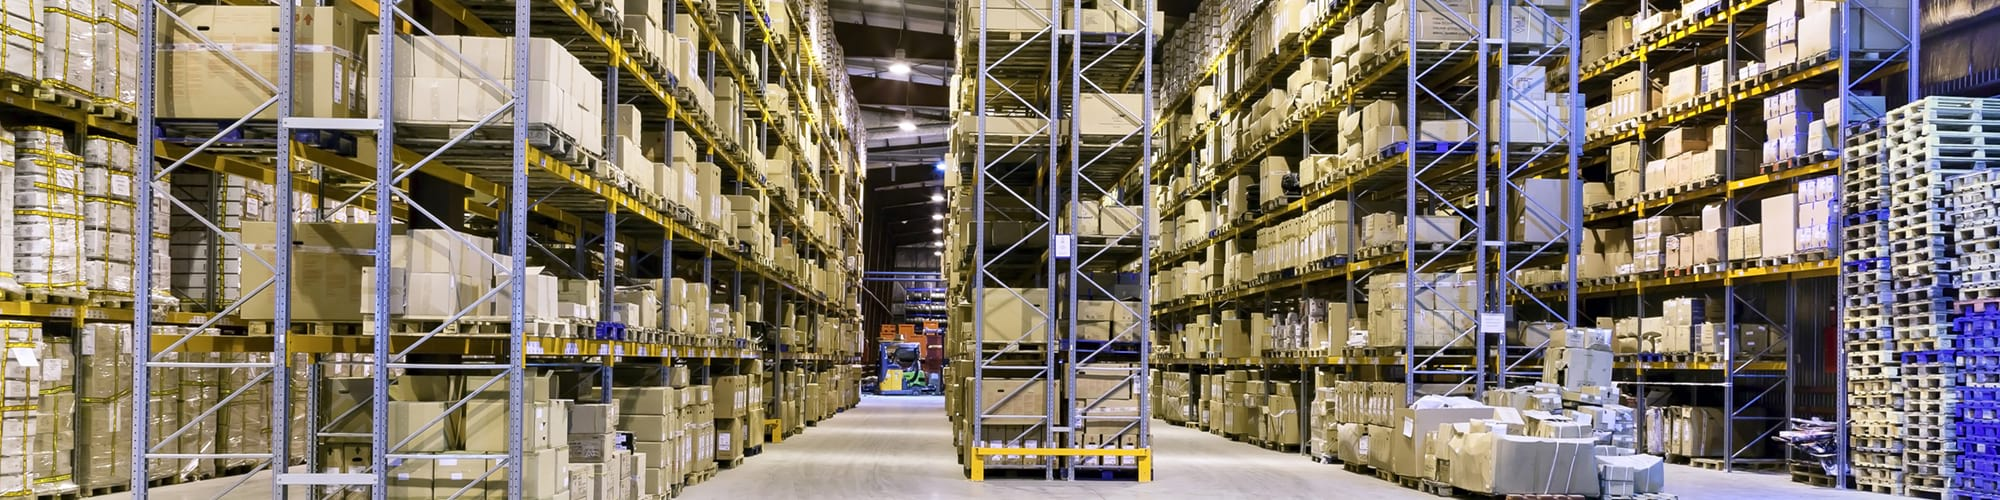 Inside the warehouse with full of goods in the racks